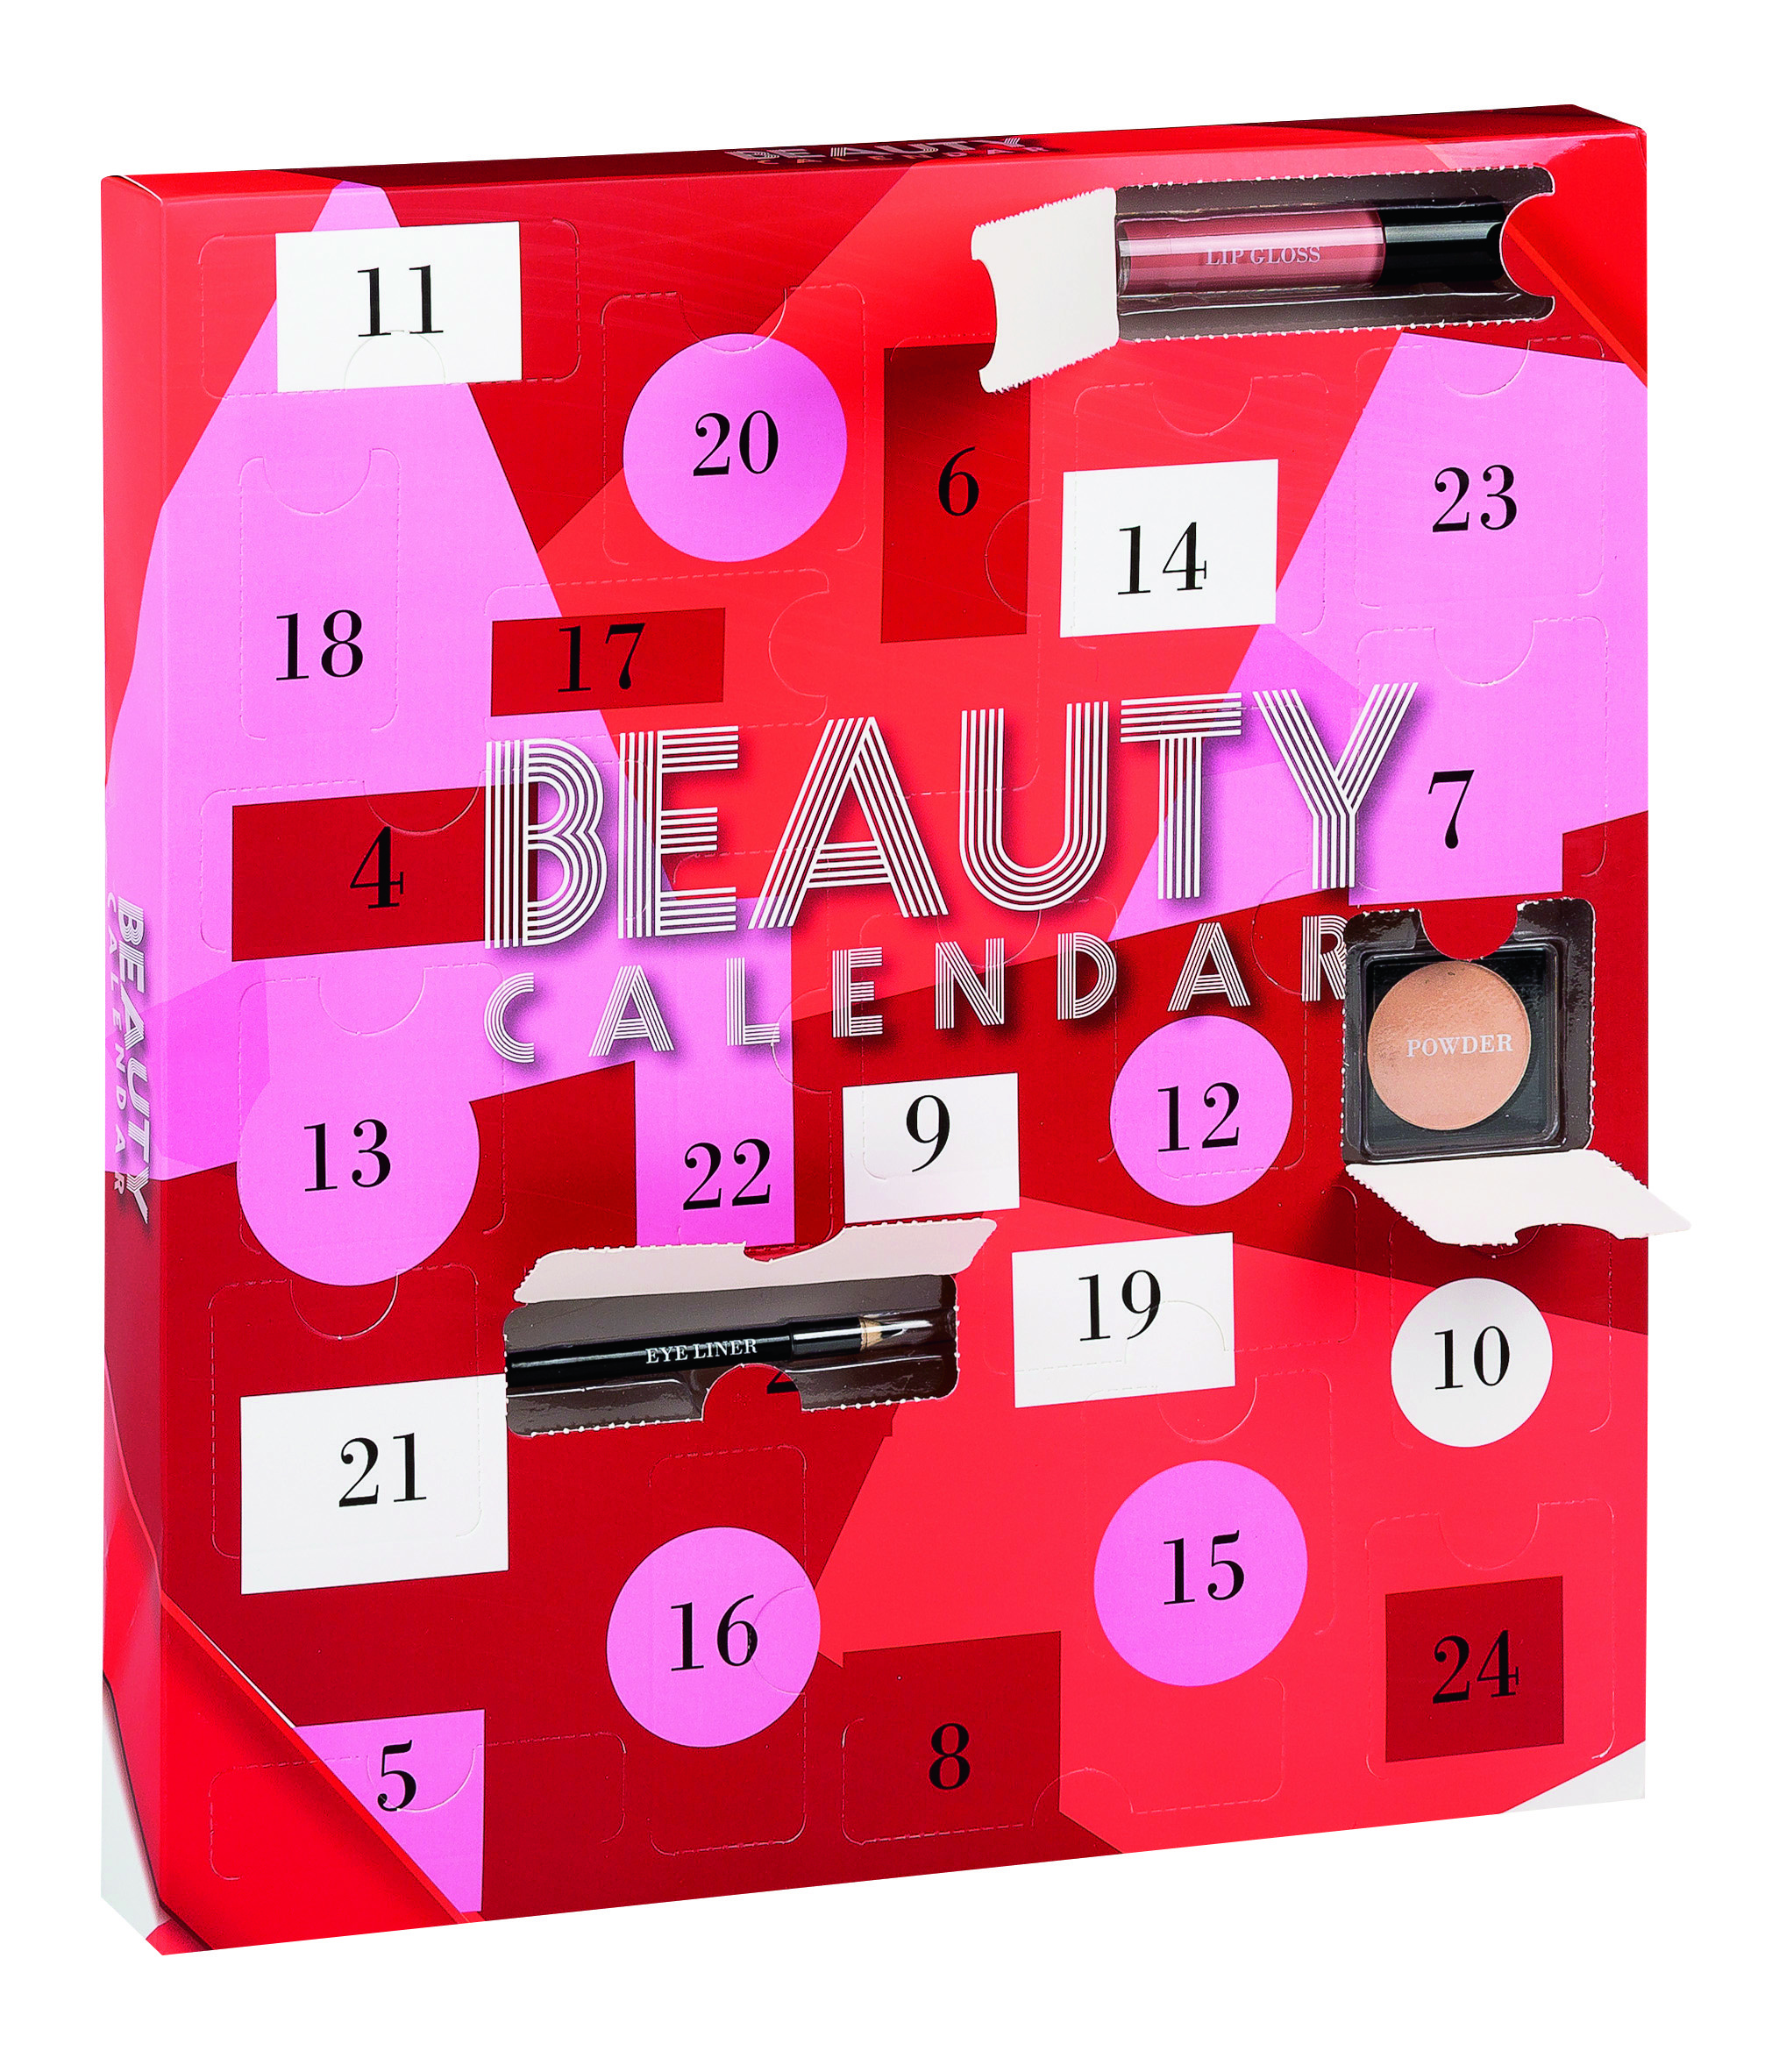 planet parfum adventskalender